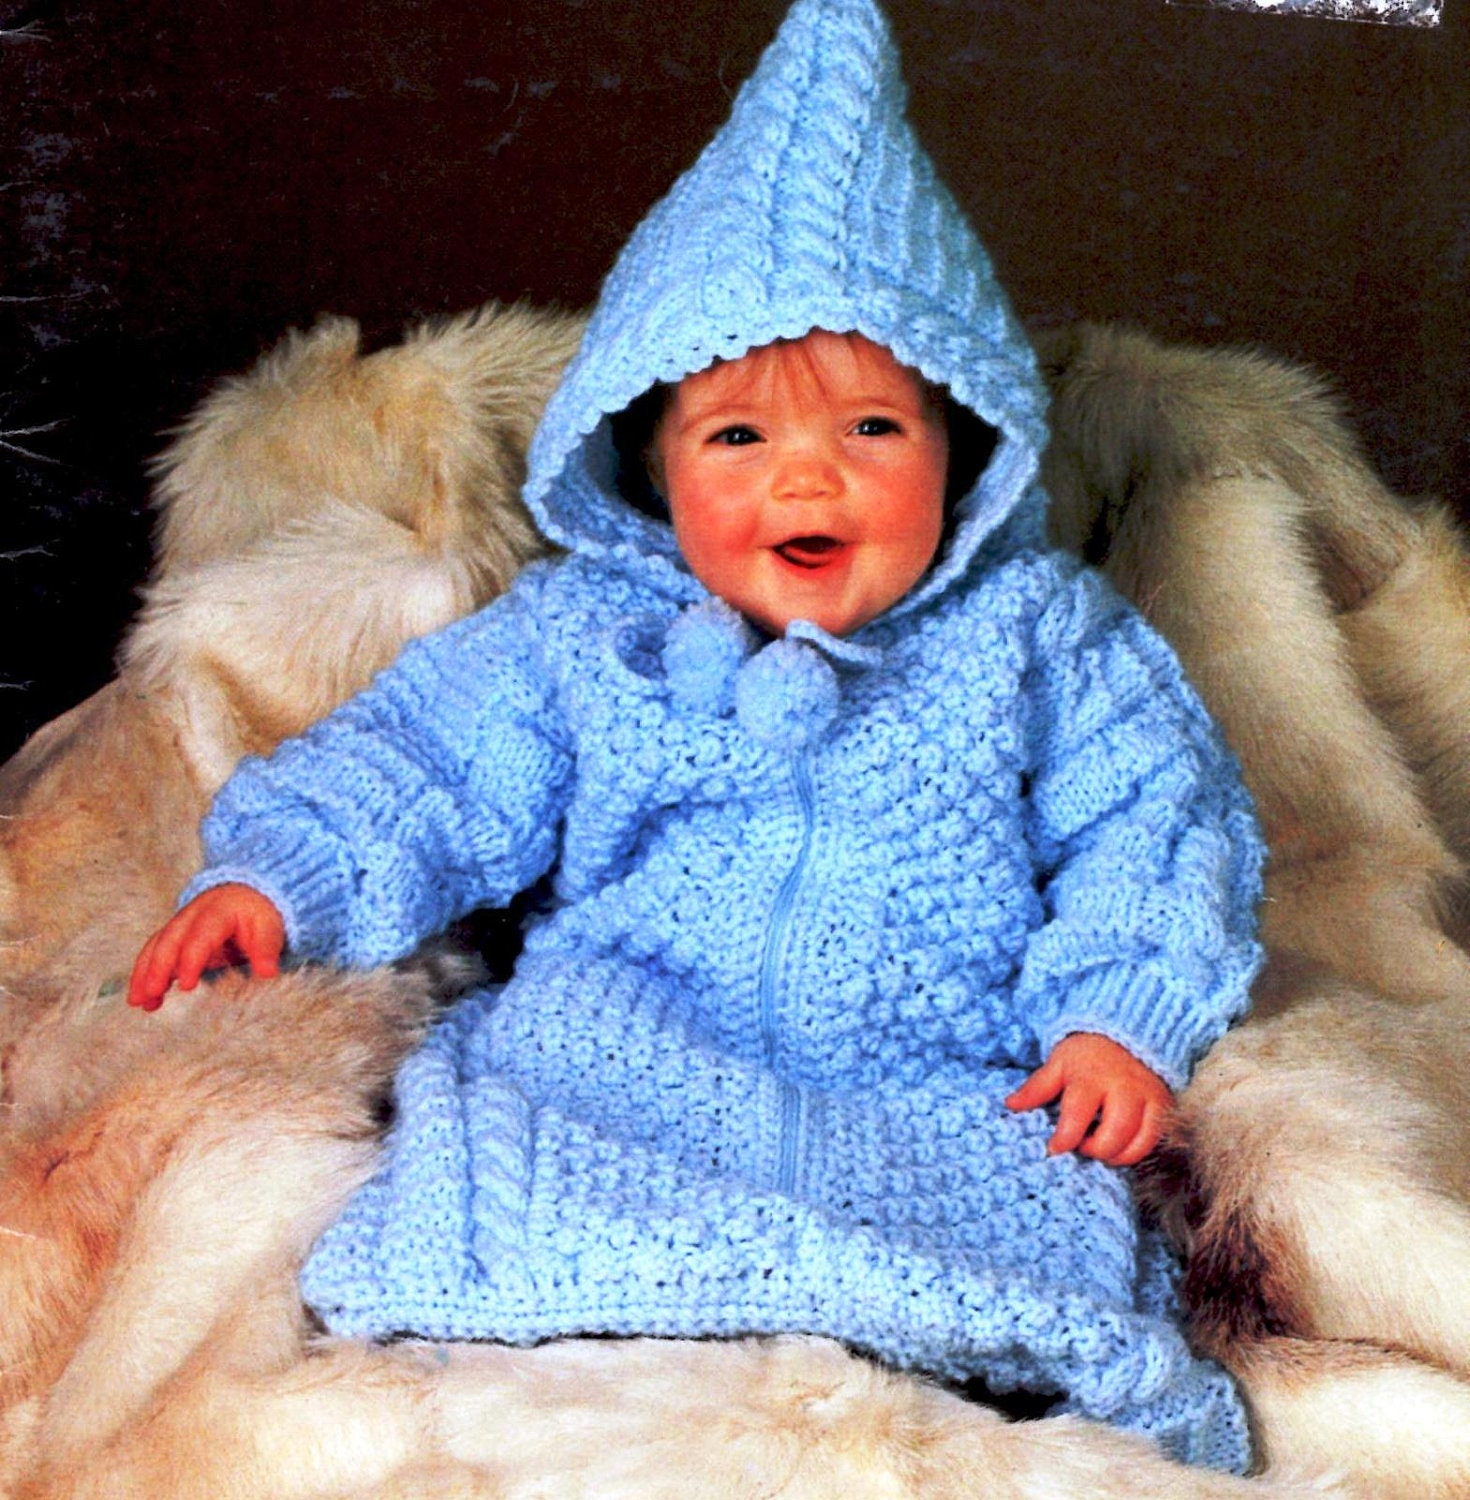 Knitted baby bunting - photo#15